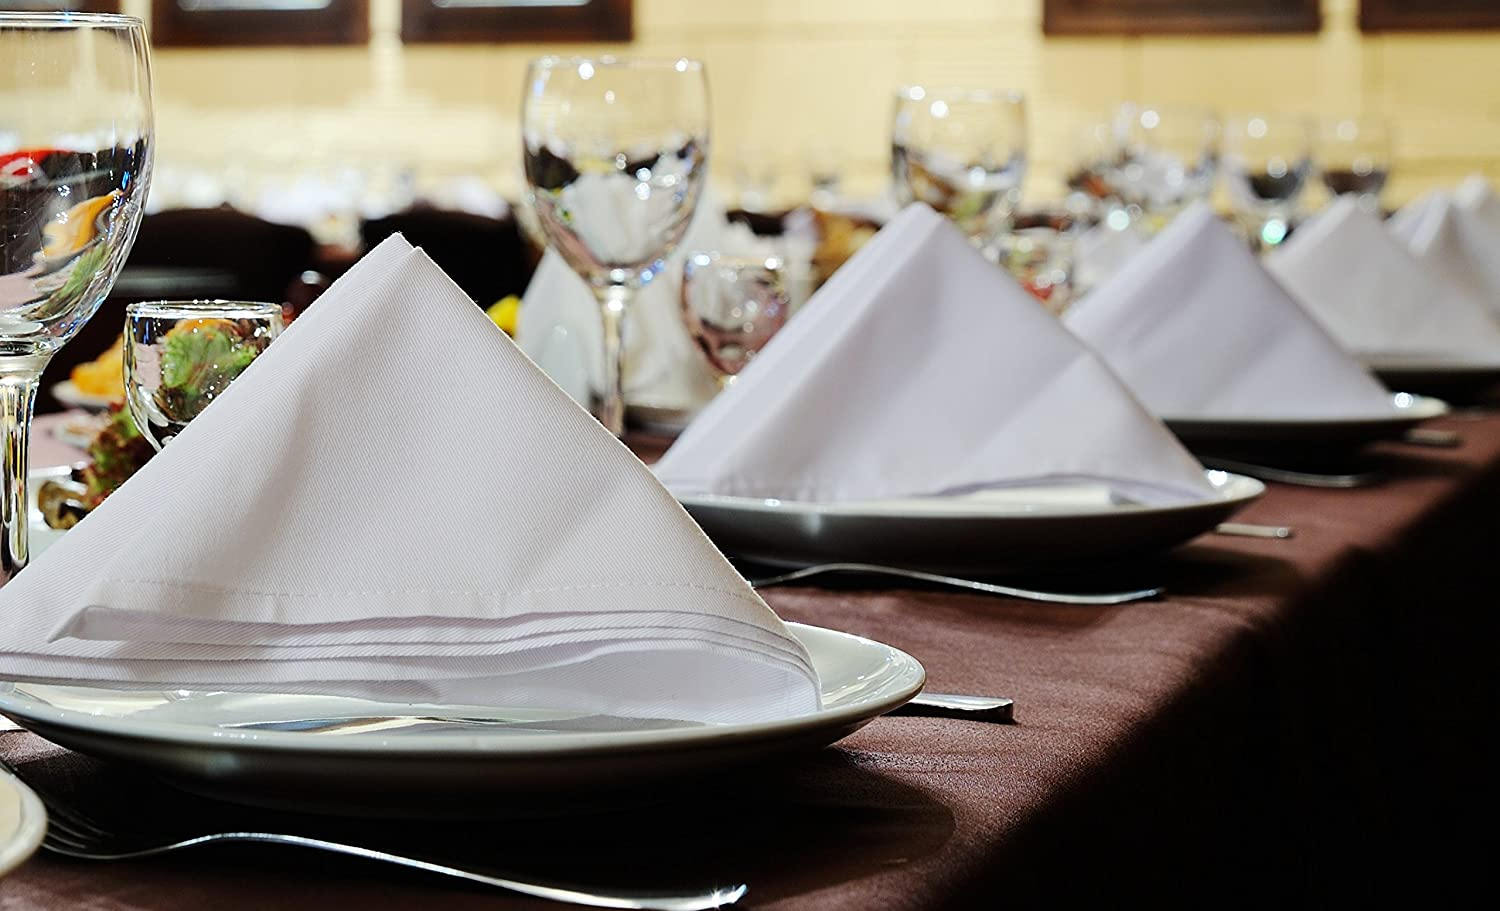 20x20 Made in USA 96 pieces White Dinner Napkins for Banquets /& Restaurants Commercial Grade 100/% Polyester with Soft Cotton Touch Wholesale Priced Bulk Packing 20x20 Atlas